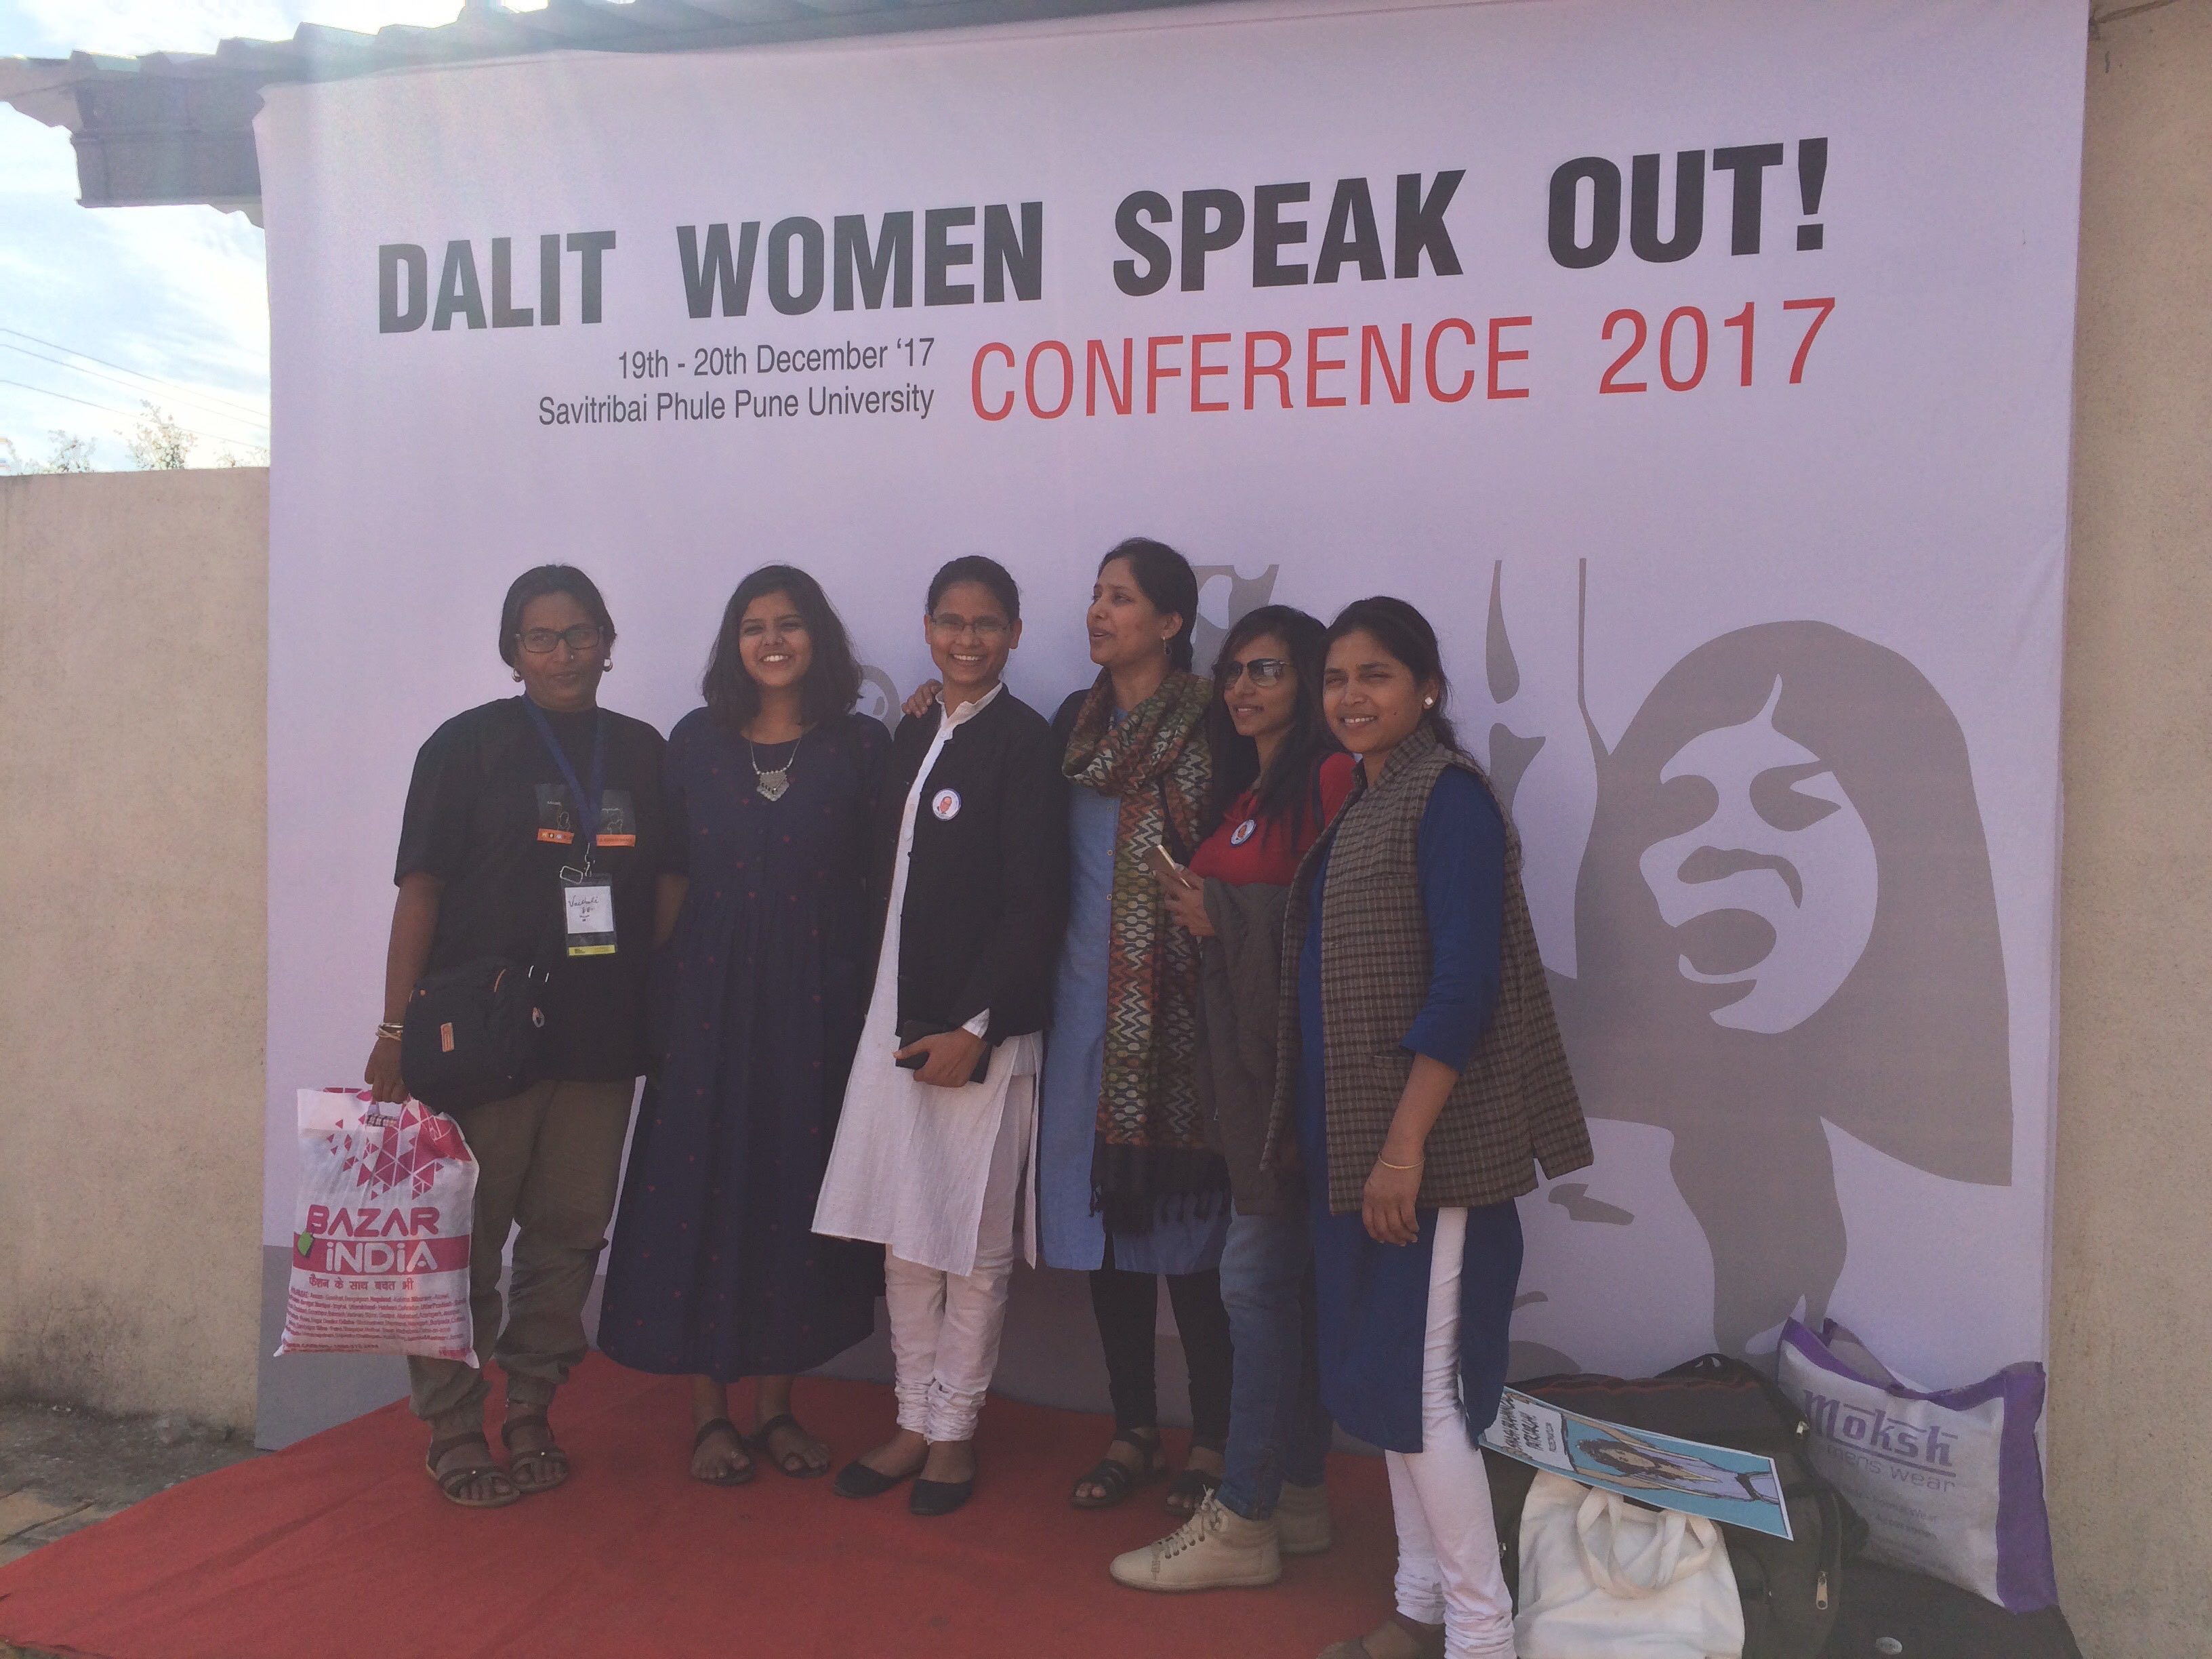 Women at the conference. Credit: Varsha Torgalkar